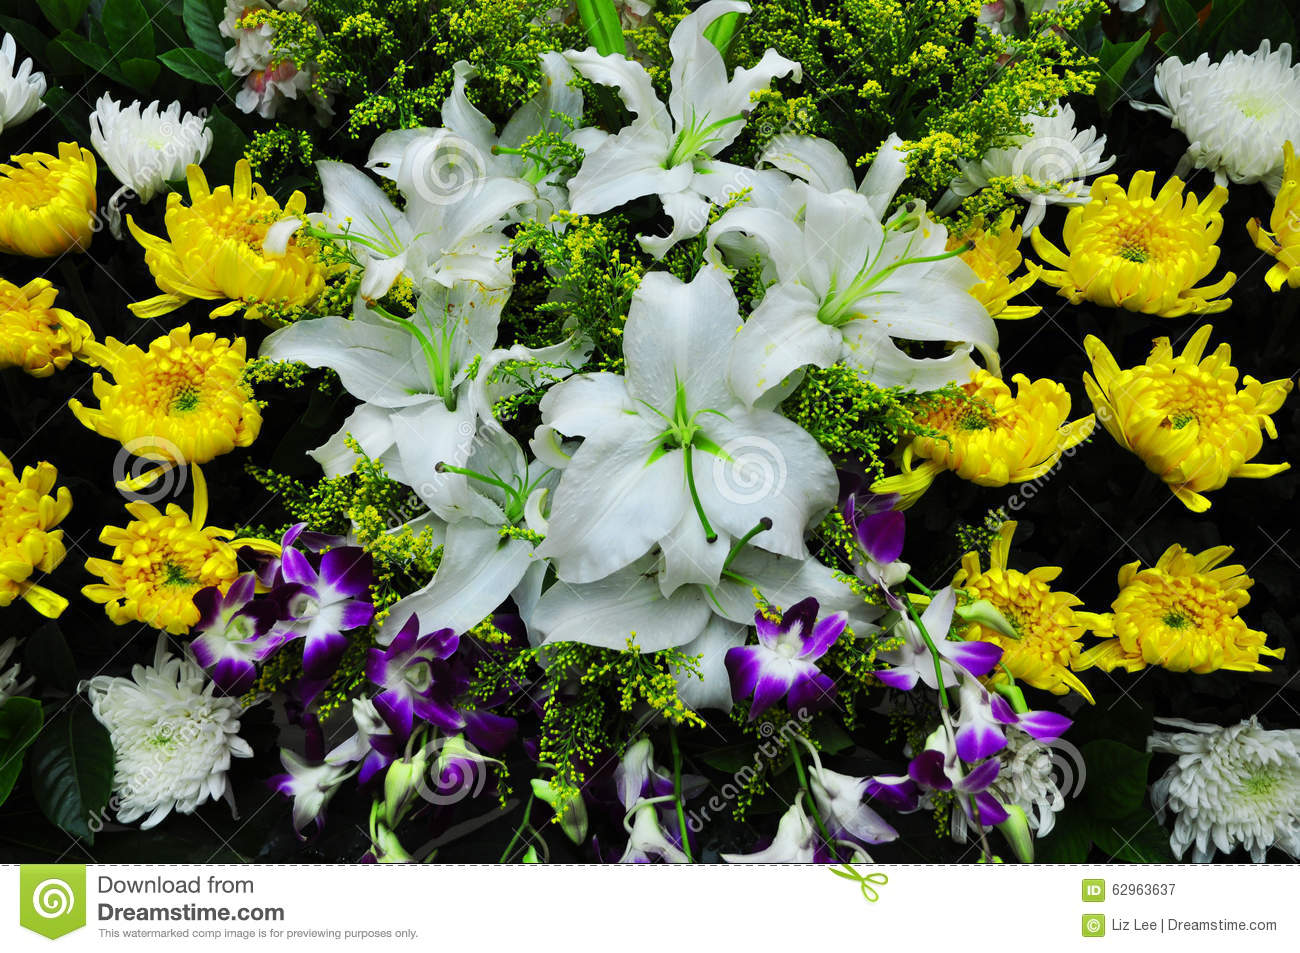 Funeral flowers for condolences stock photo image of eastern funeral flowers for condolences royalty free stock photography izmirmasajfo